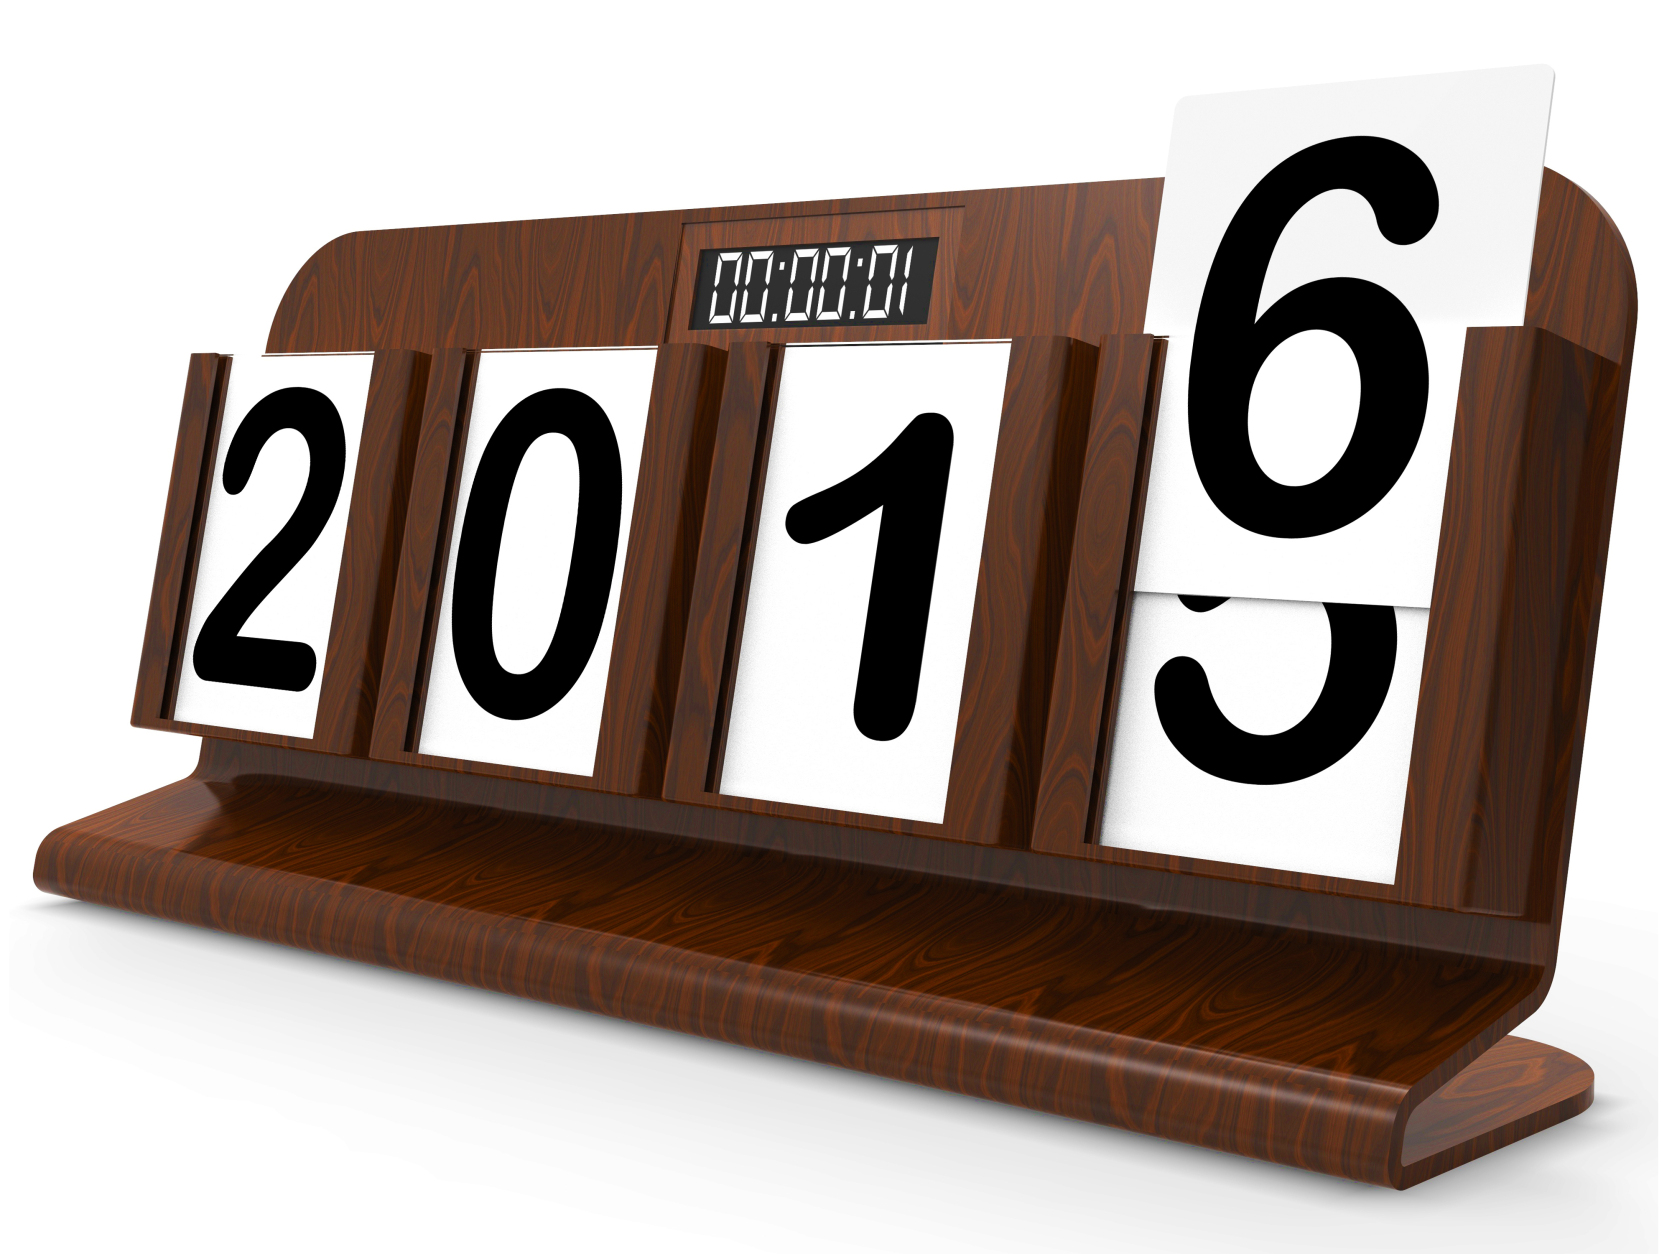 The New Year is a great time to review your Financial Health